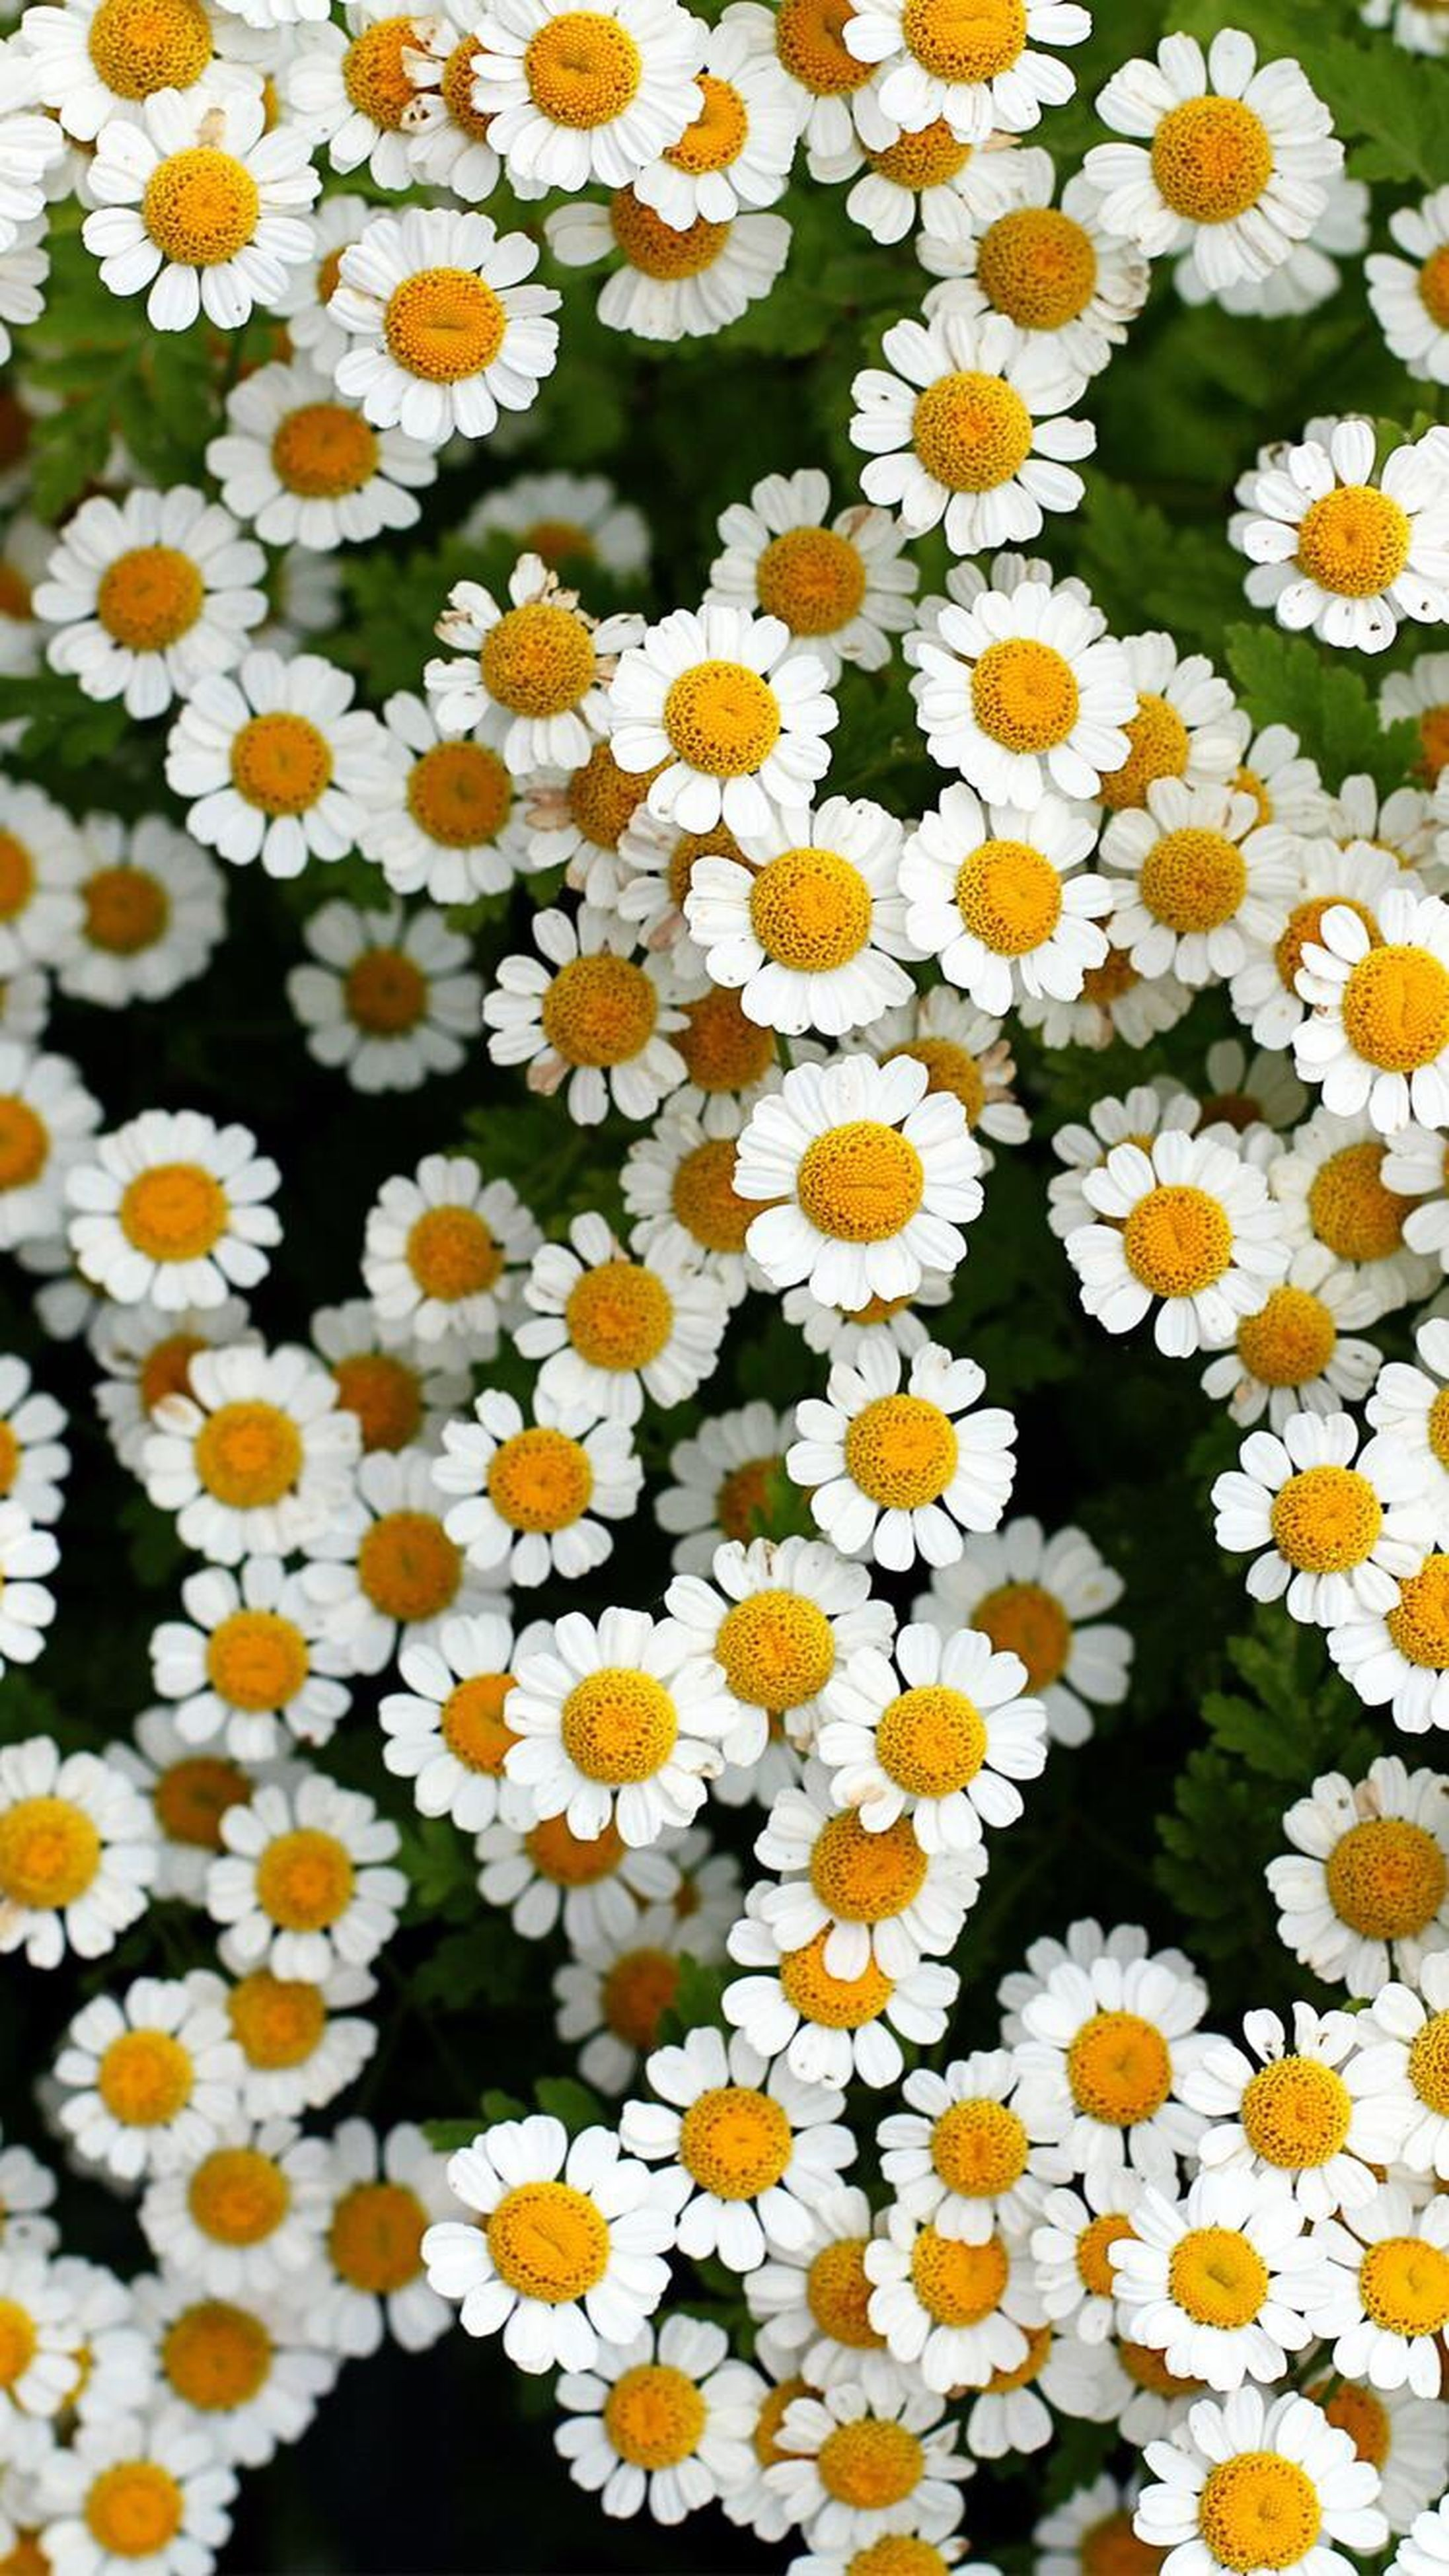 flower, freshness, yellow, fragility, petal, nature, beauty in nature, growth, flower head, plant, no people, backgrounds, close-up, outdoors, day